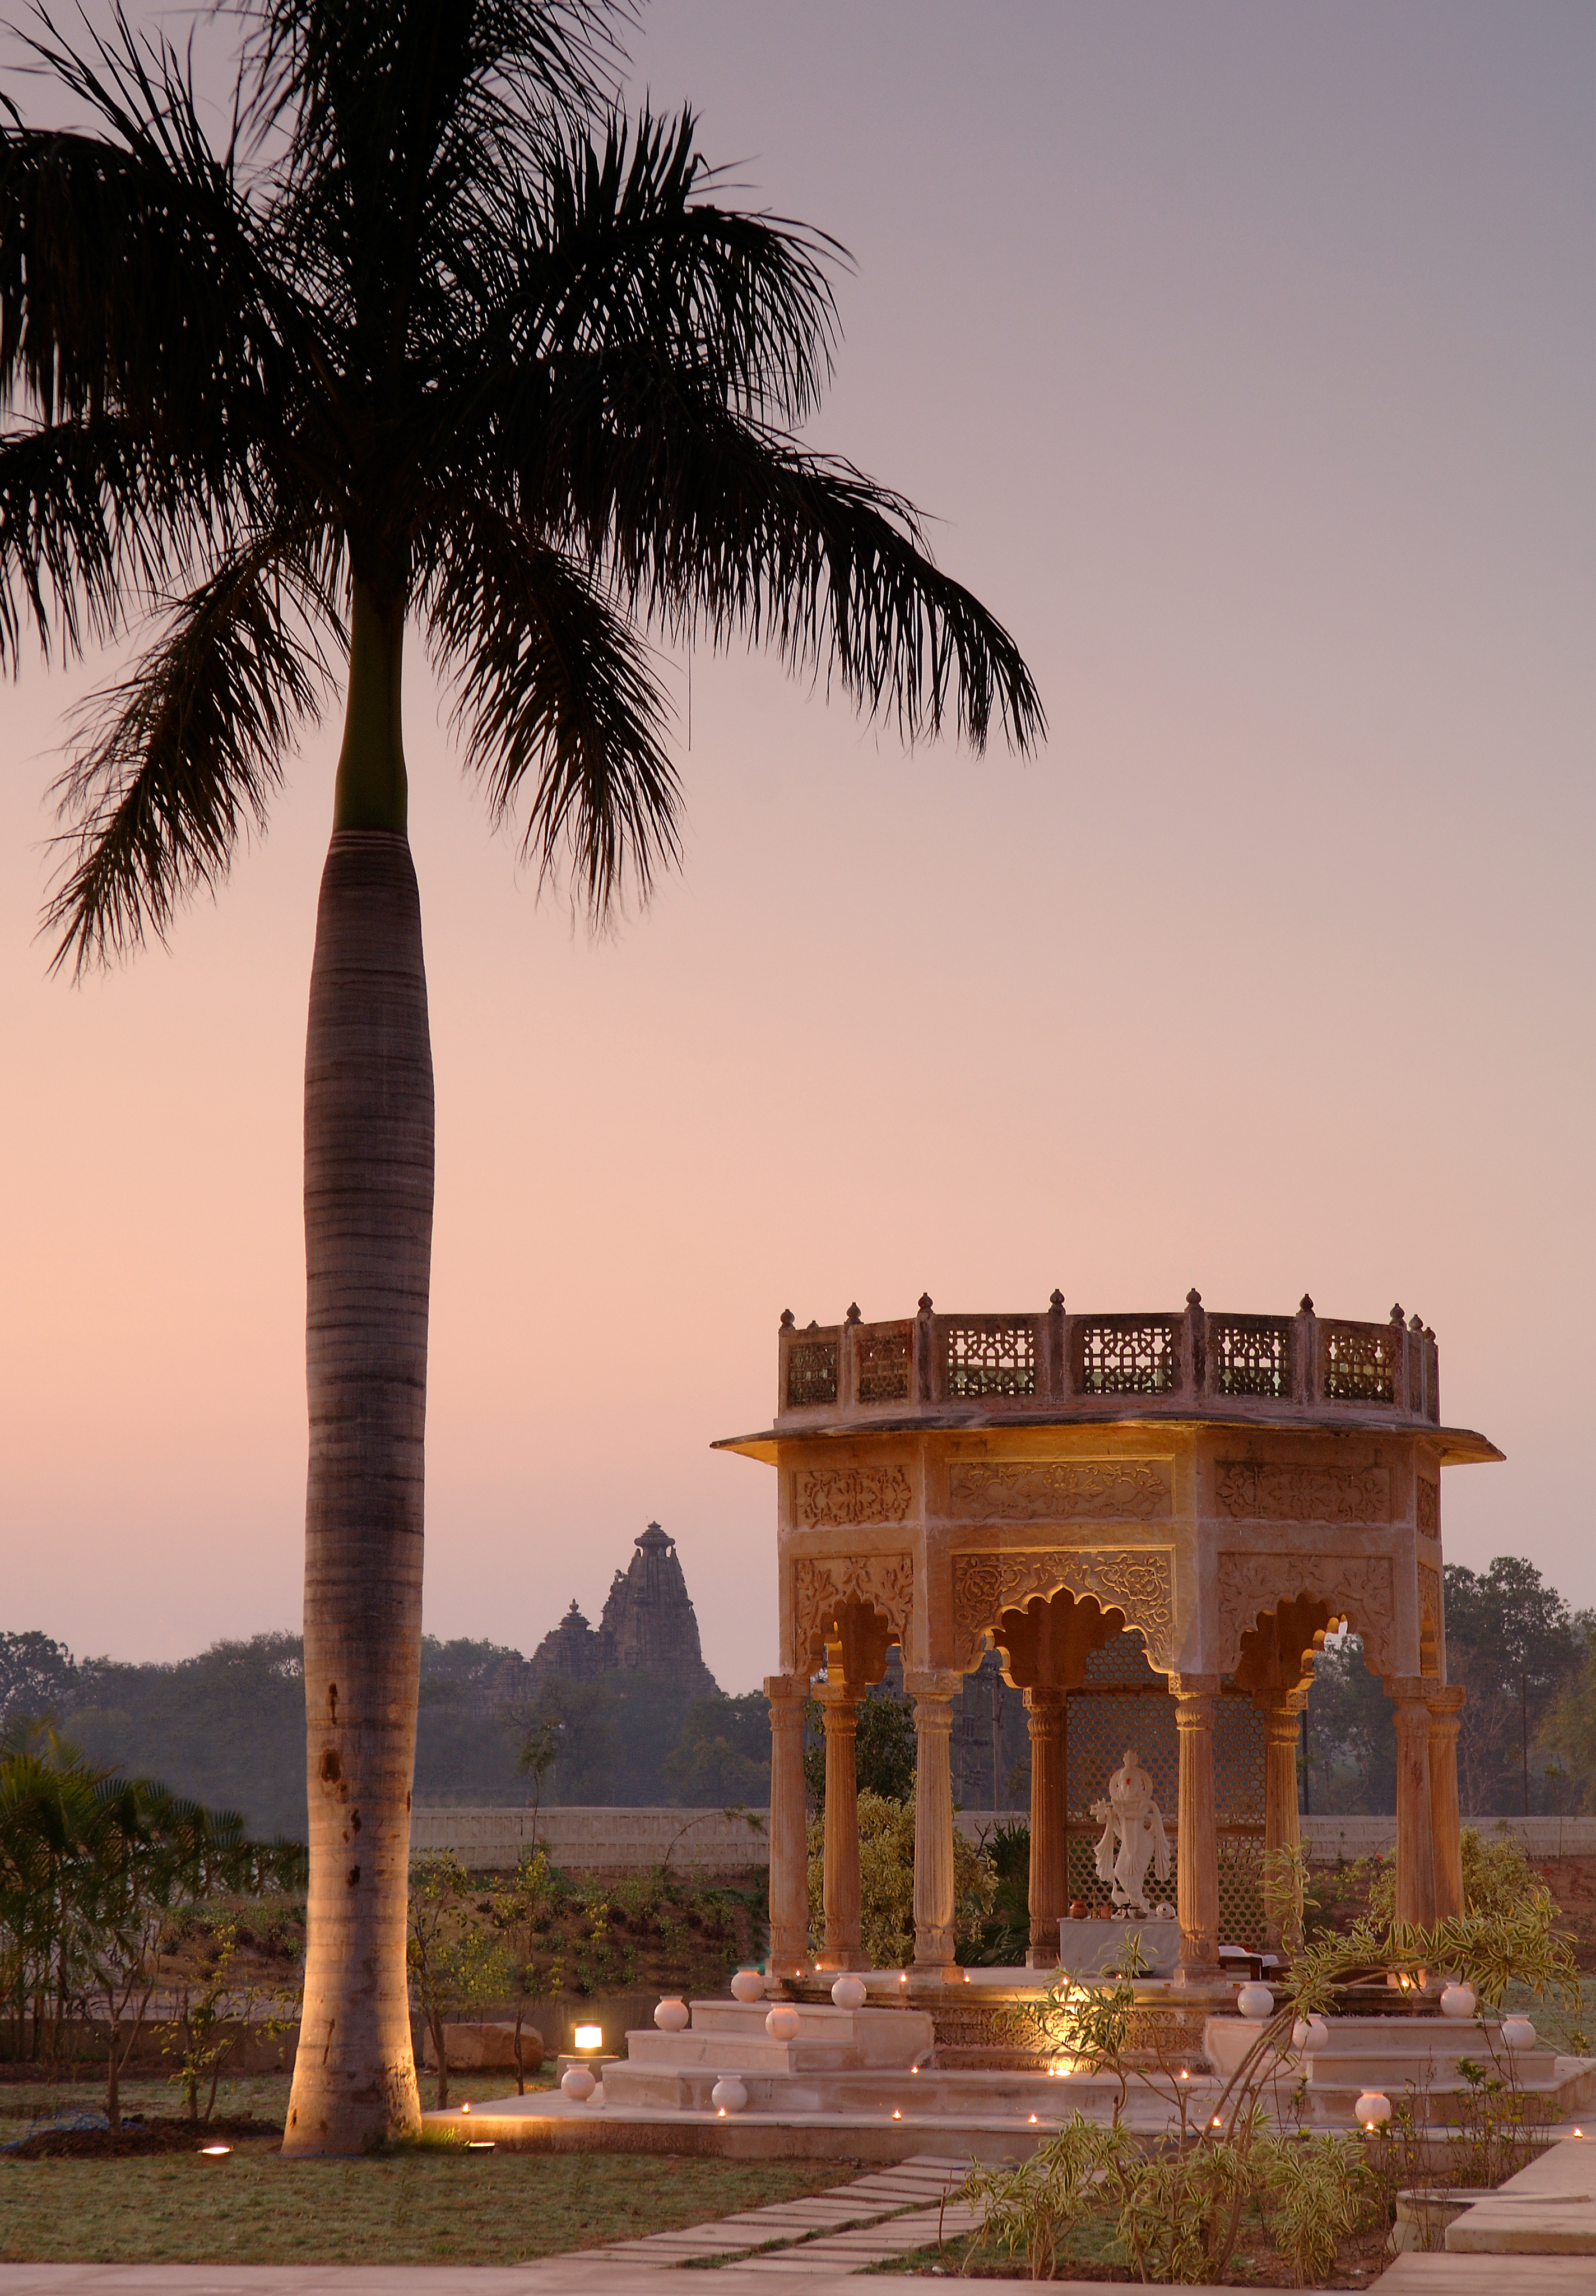 THE LALIT TEMPLE VIEW